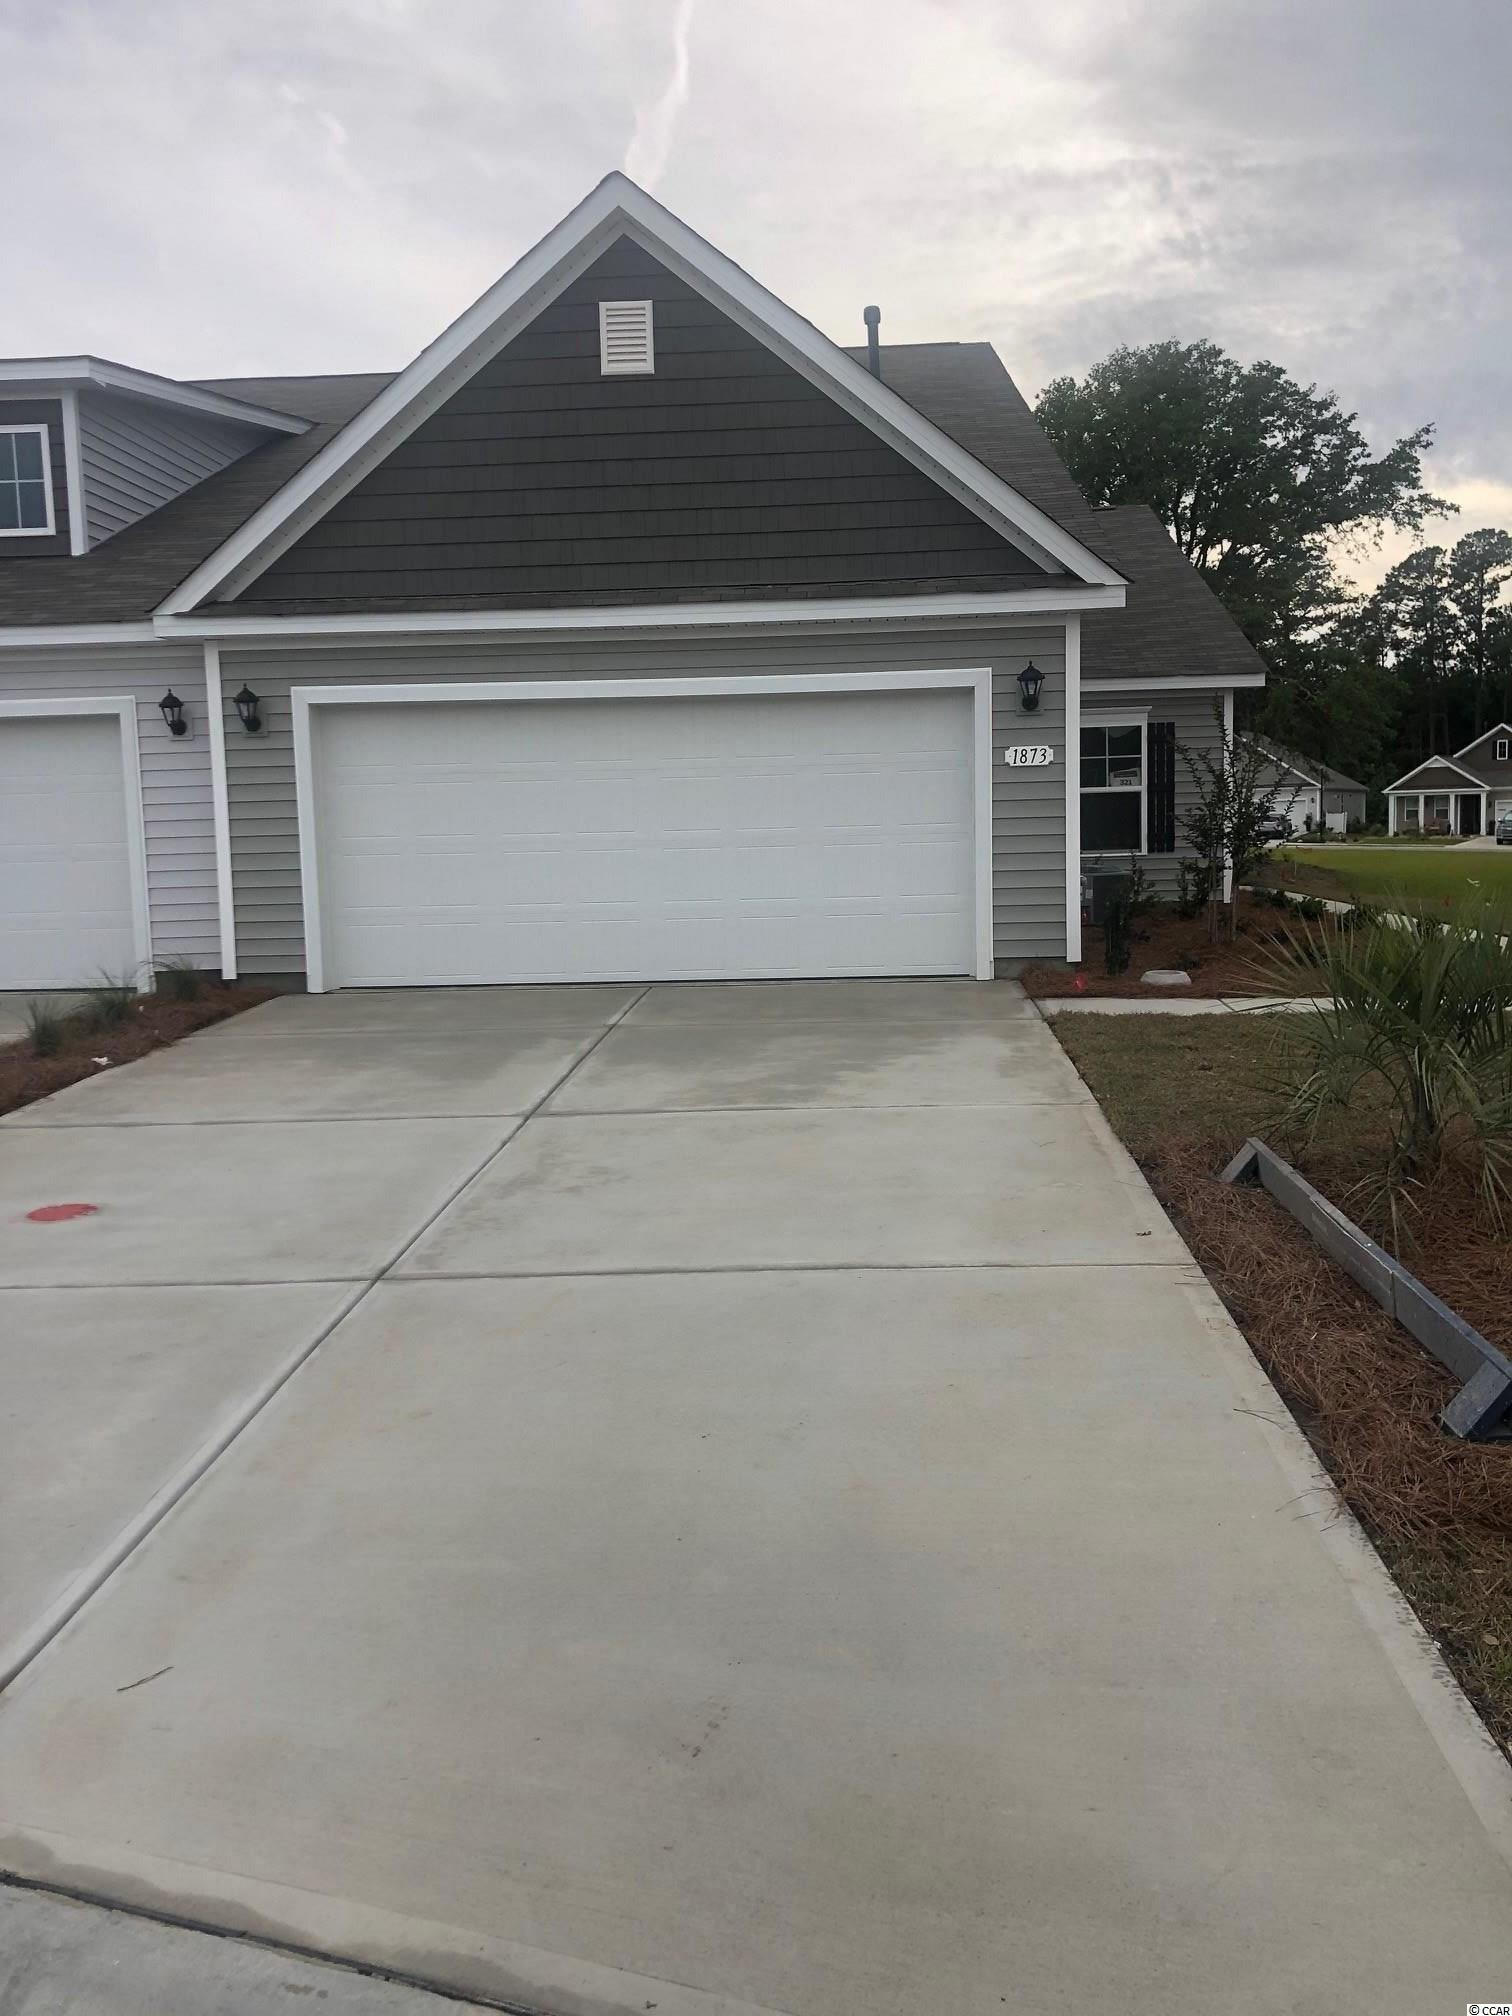 Lovely, low maintenance, paired ranch home in a brand new community! This Tuscan floorplan offers a spacious, open layout all on a single level. With vaulted ceilings, tons of natural light throughout the living and dining areas, large kitchen island, and spacious covered porch, this home is perfect for entertaining! The kitchen also features granite countertops, stainless Whirlpool appliances, white painted cabinetry, and a large pantry with ample storage. Roomy primary bedroom suite with walk-in closet and private bath with dual vanity and 5 ft. walk-in shower. This home also features laminate wood flooring throughout the main living areas, a tankless gas water heater, and our industry leading smart home technology package. Yard and exterior maintenance are all covered! 4' black aluminum fencing is permitted (per HOA approval).  *Photos are of a similar Tuscan home. (Home and community information, including pricing, included features, terms, availability and amenities, are subject to change prior to sale at any time without notice or obligation. Square footages are approximate. Pictures, photographs, colors, features, and sizes are for illustration purposes only and will vary from the homes as built. Equal housing opportunity builder.)